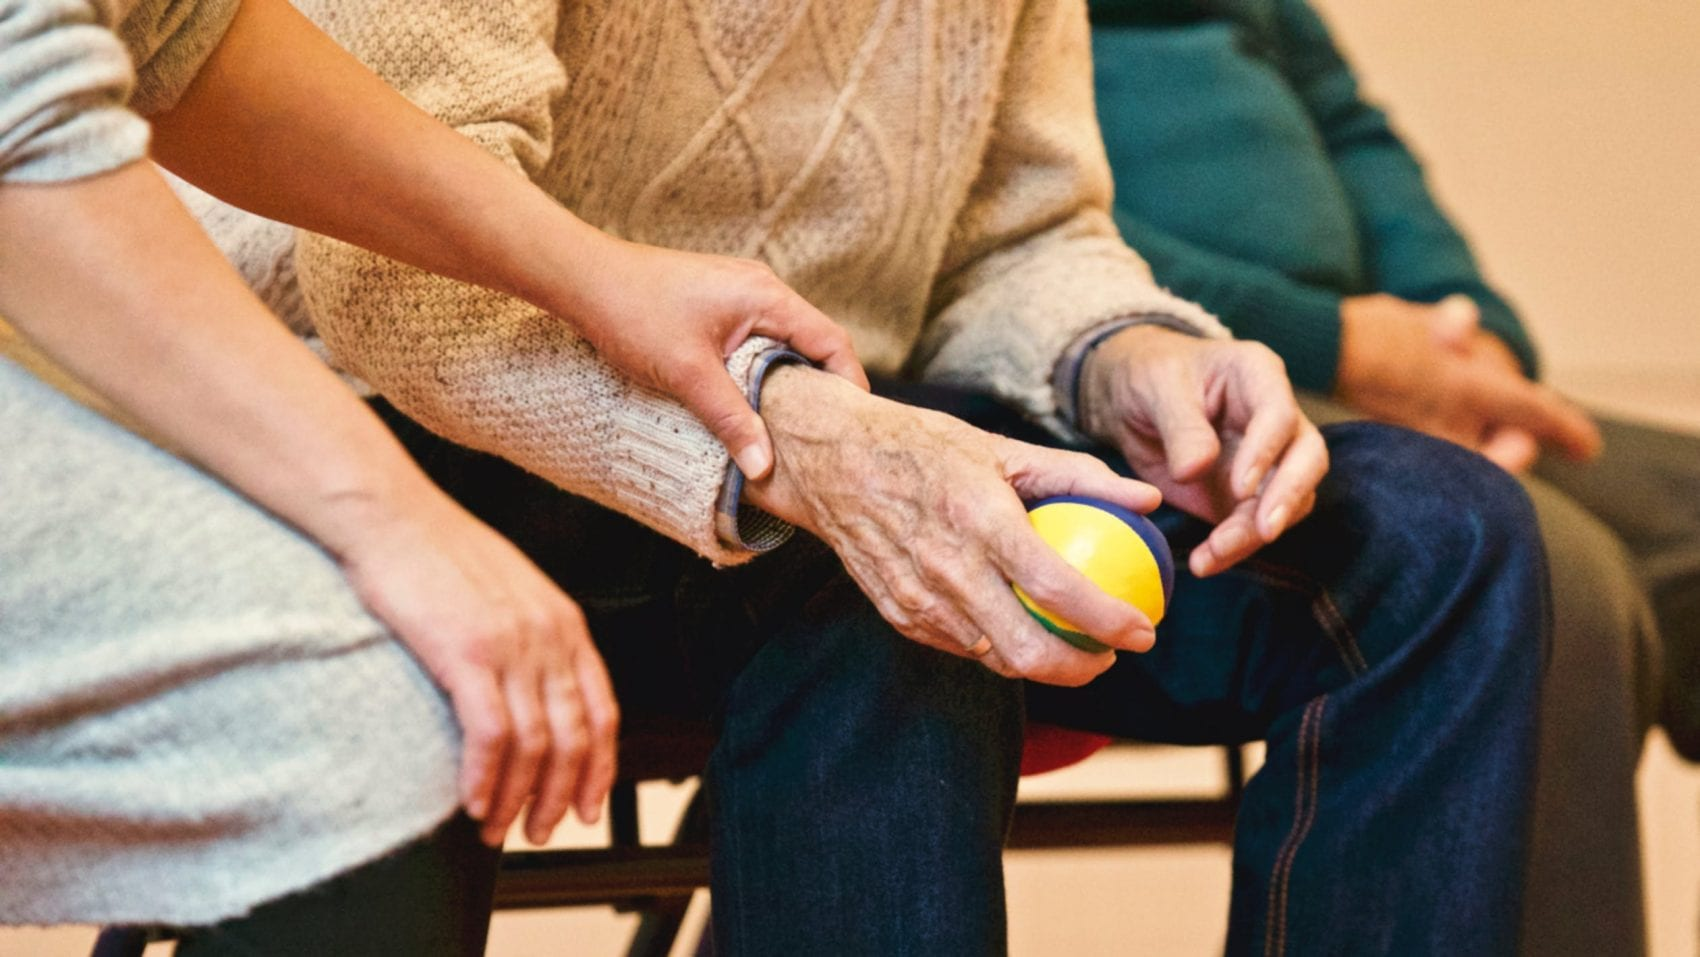 How To Become A Carer For The Elderly